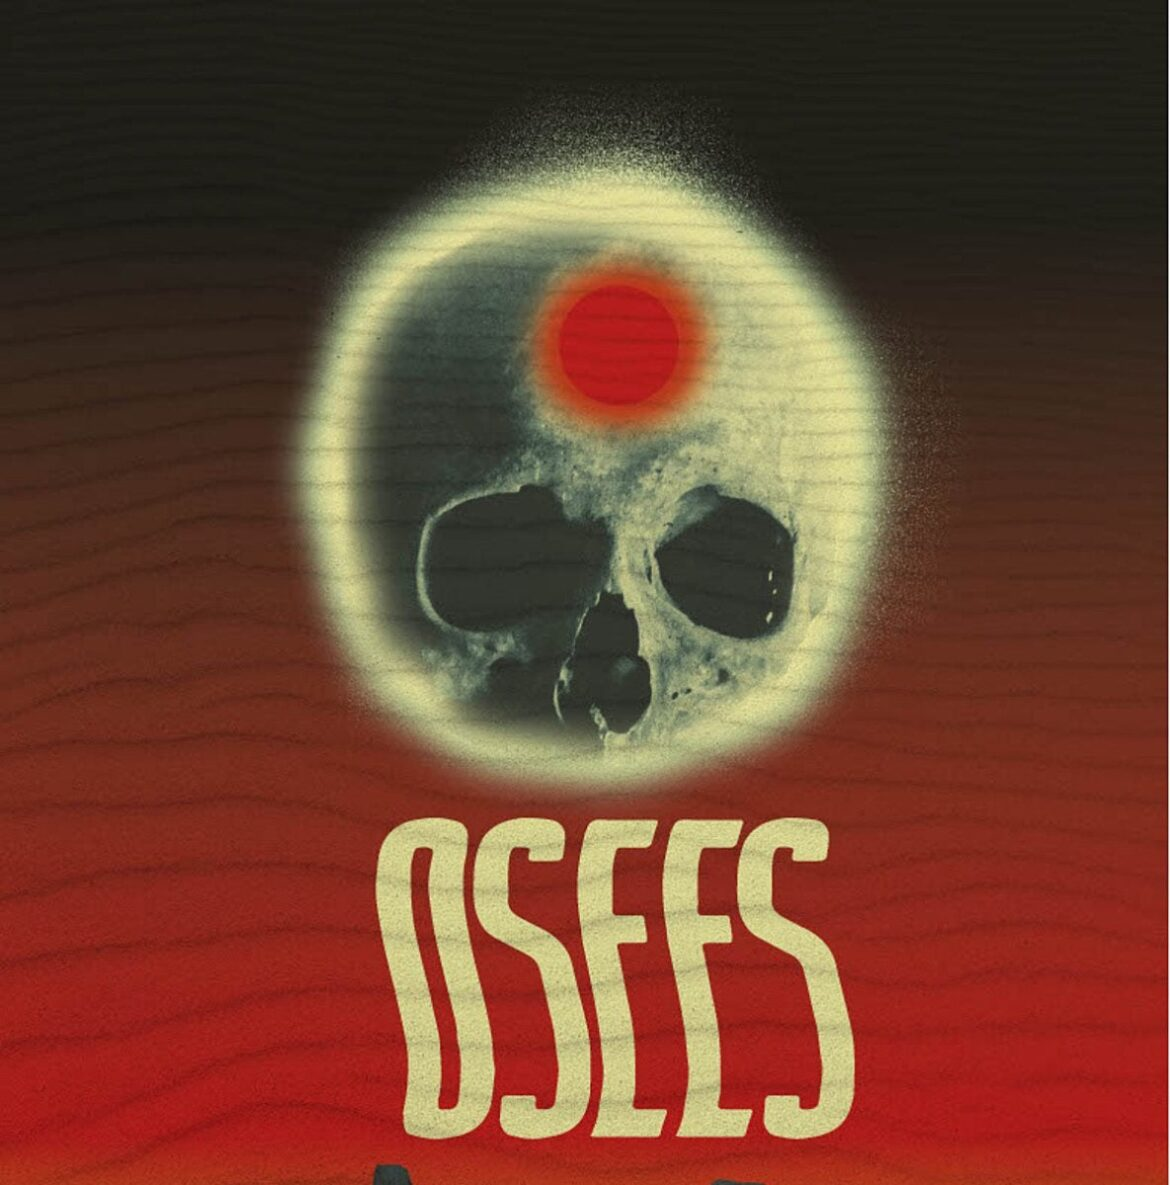 OSees Live At Red Rocks, May 15 2021